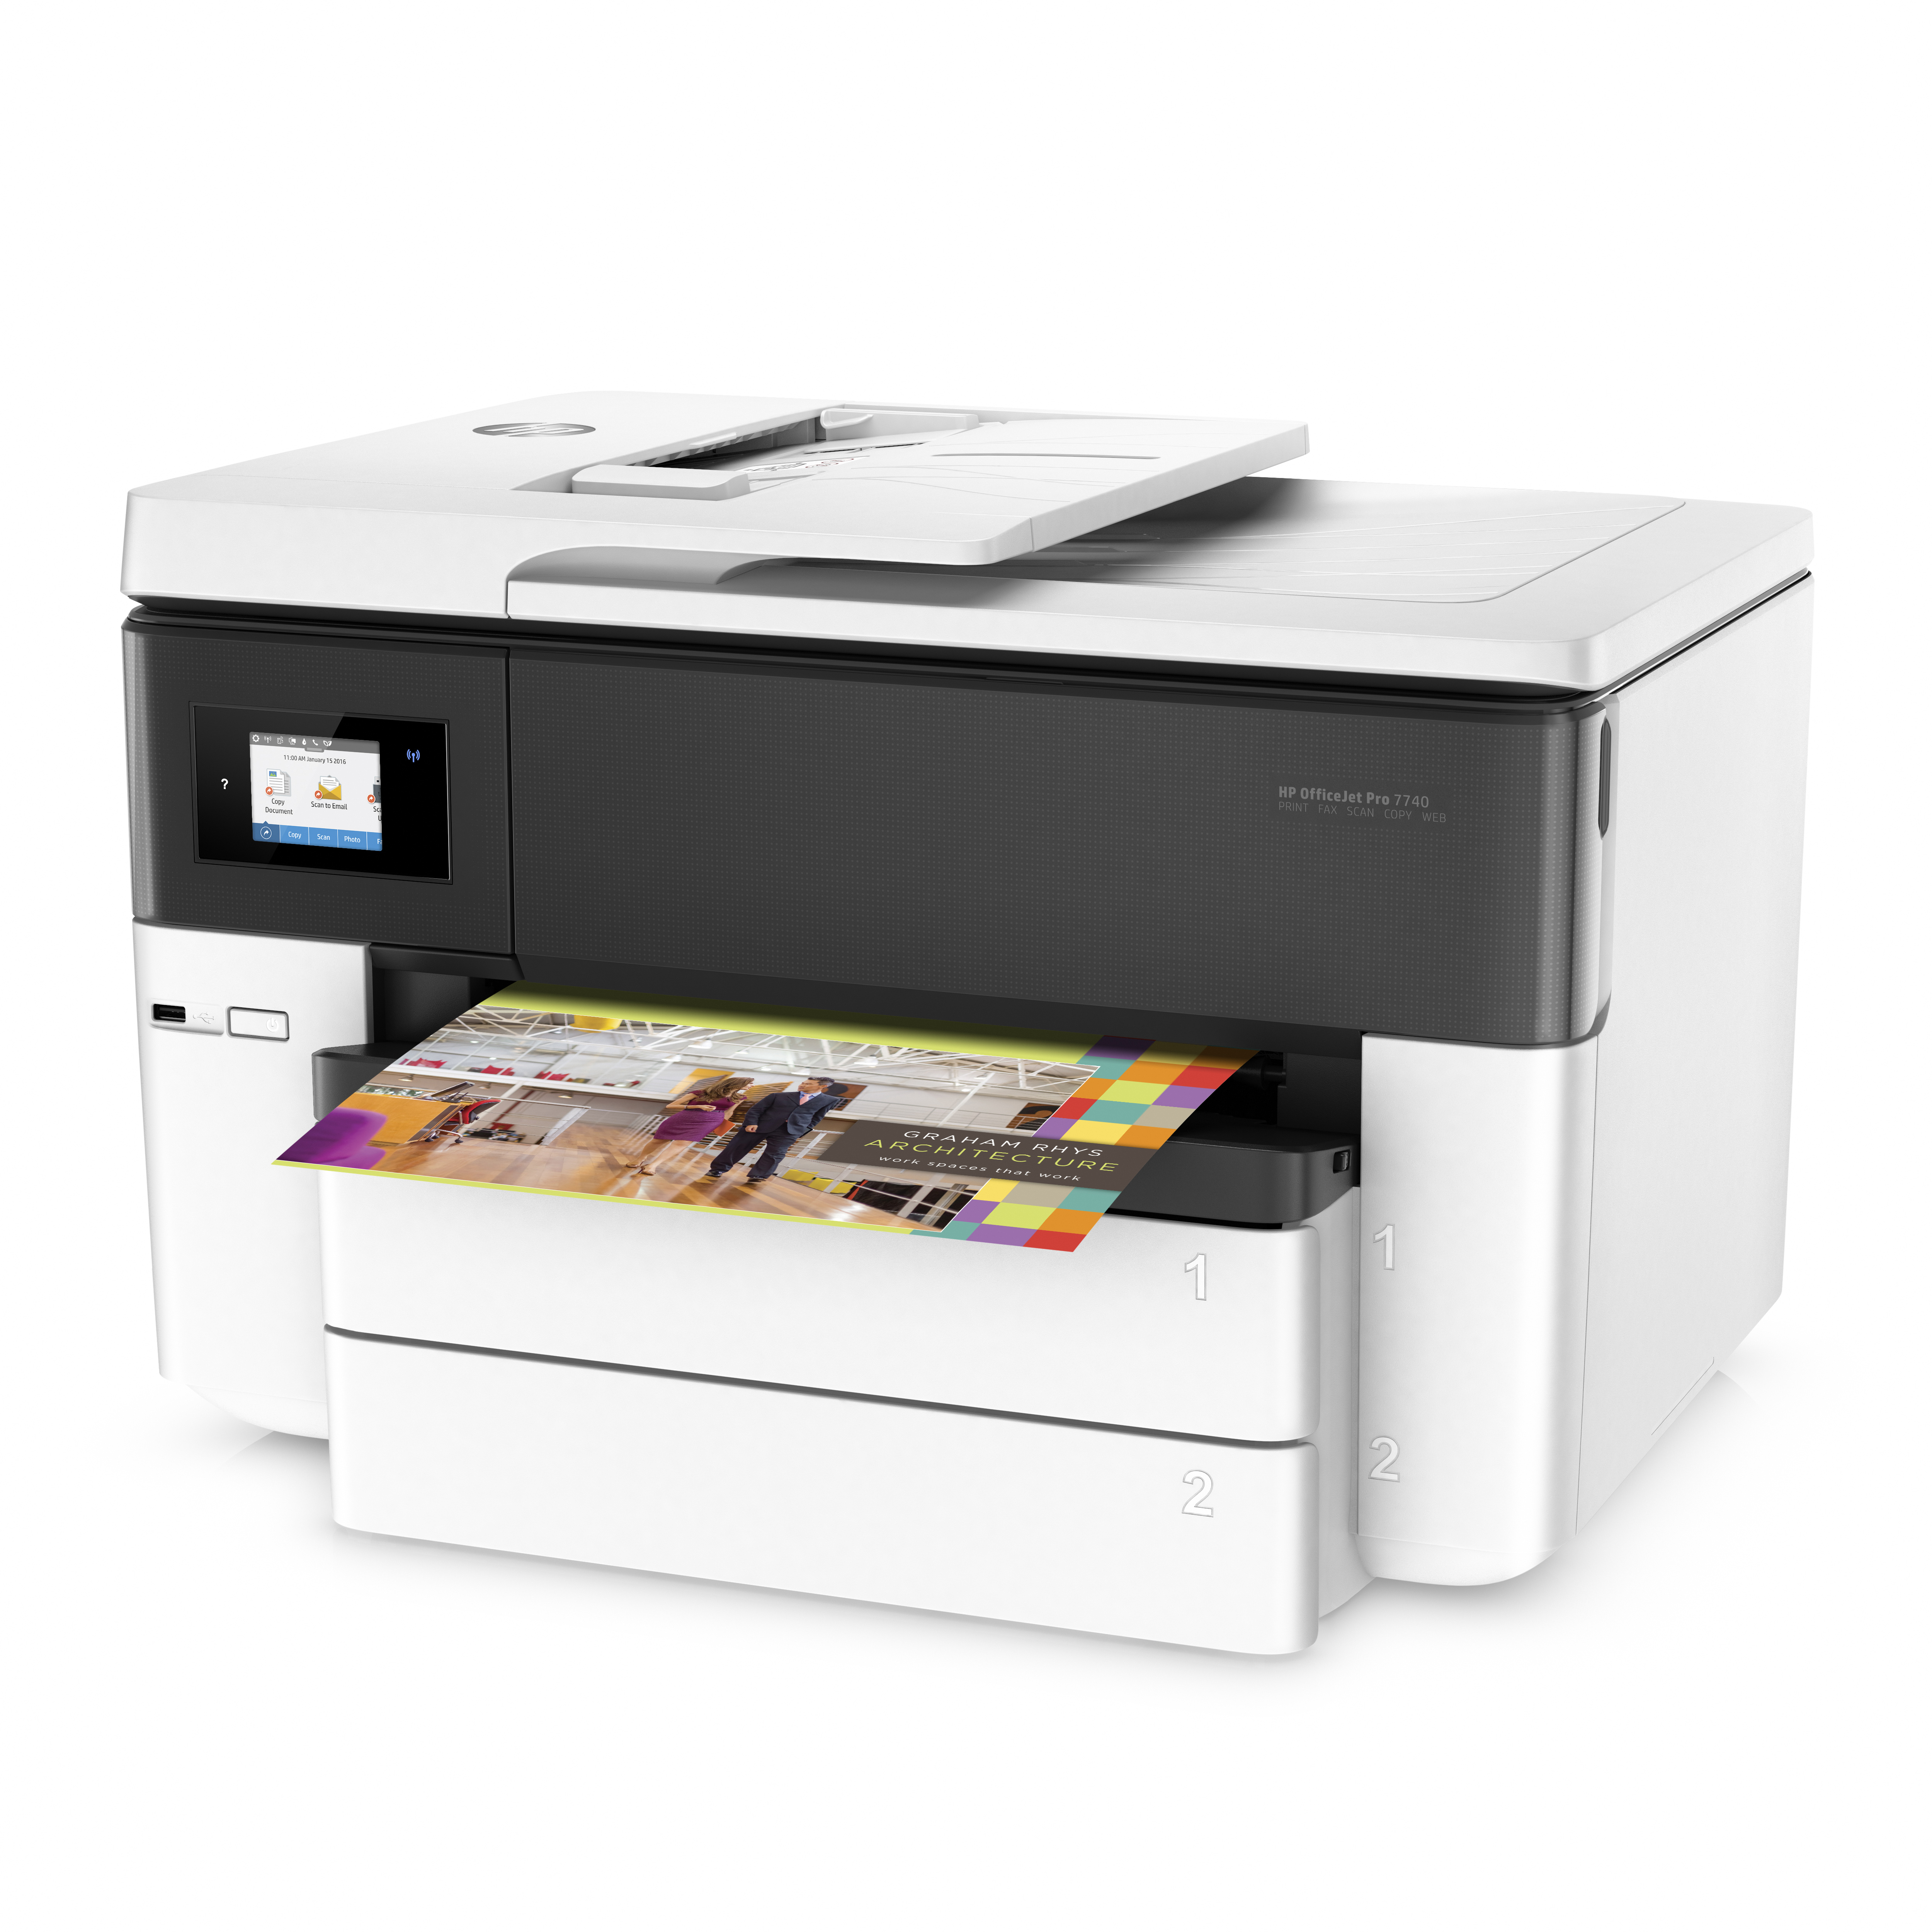 HP Officejet Pro 7740 All-in-One - multifunction printer (color)